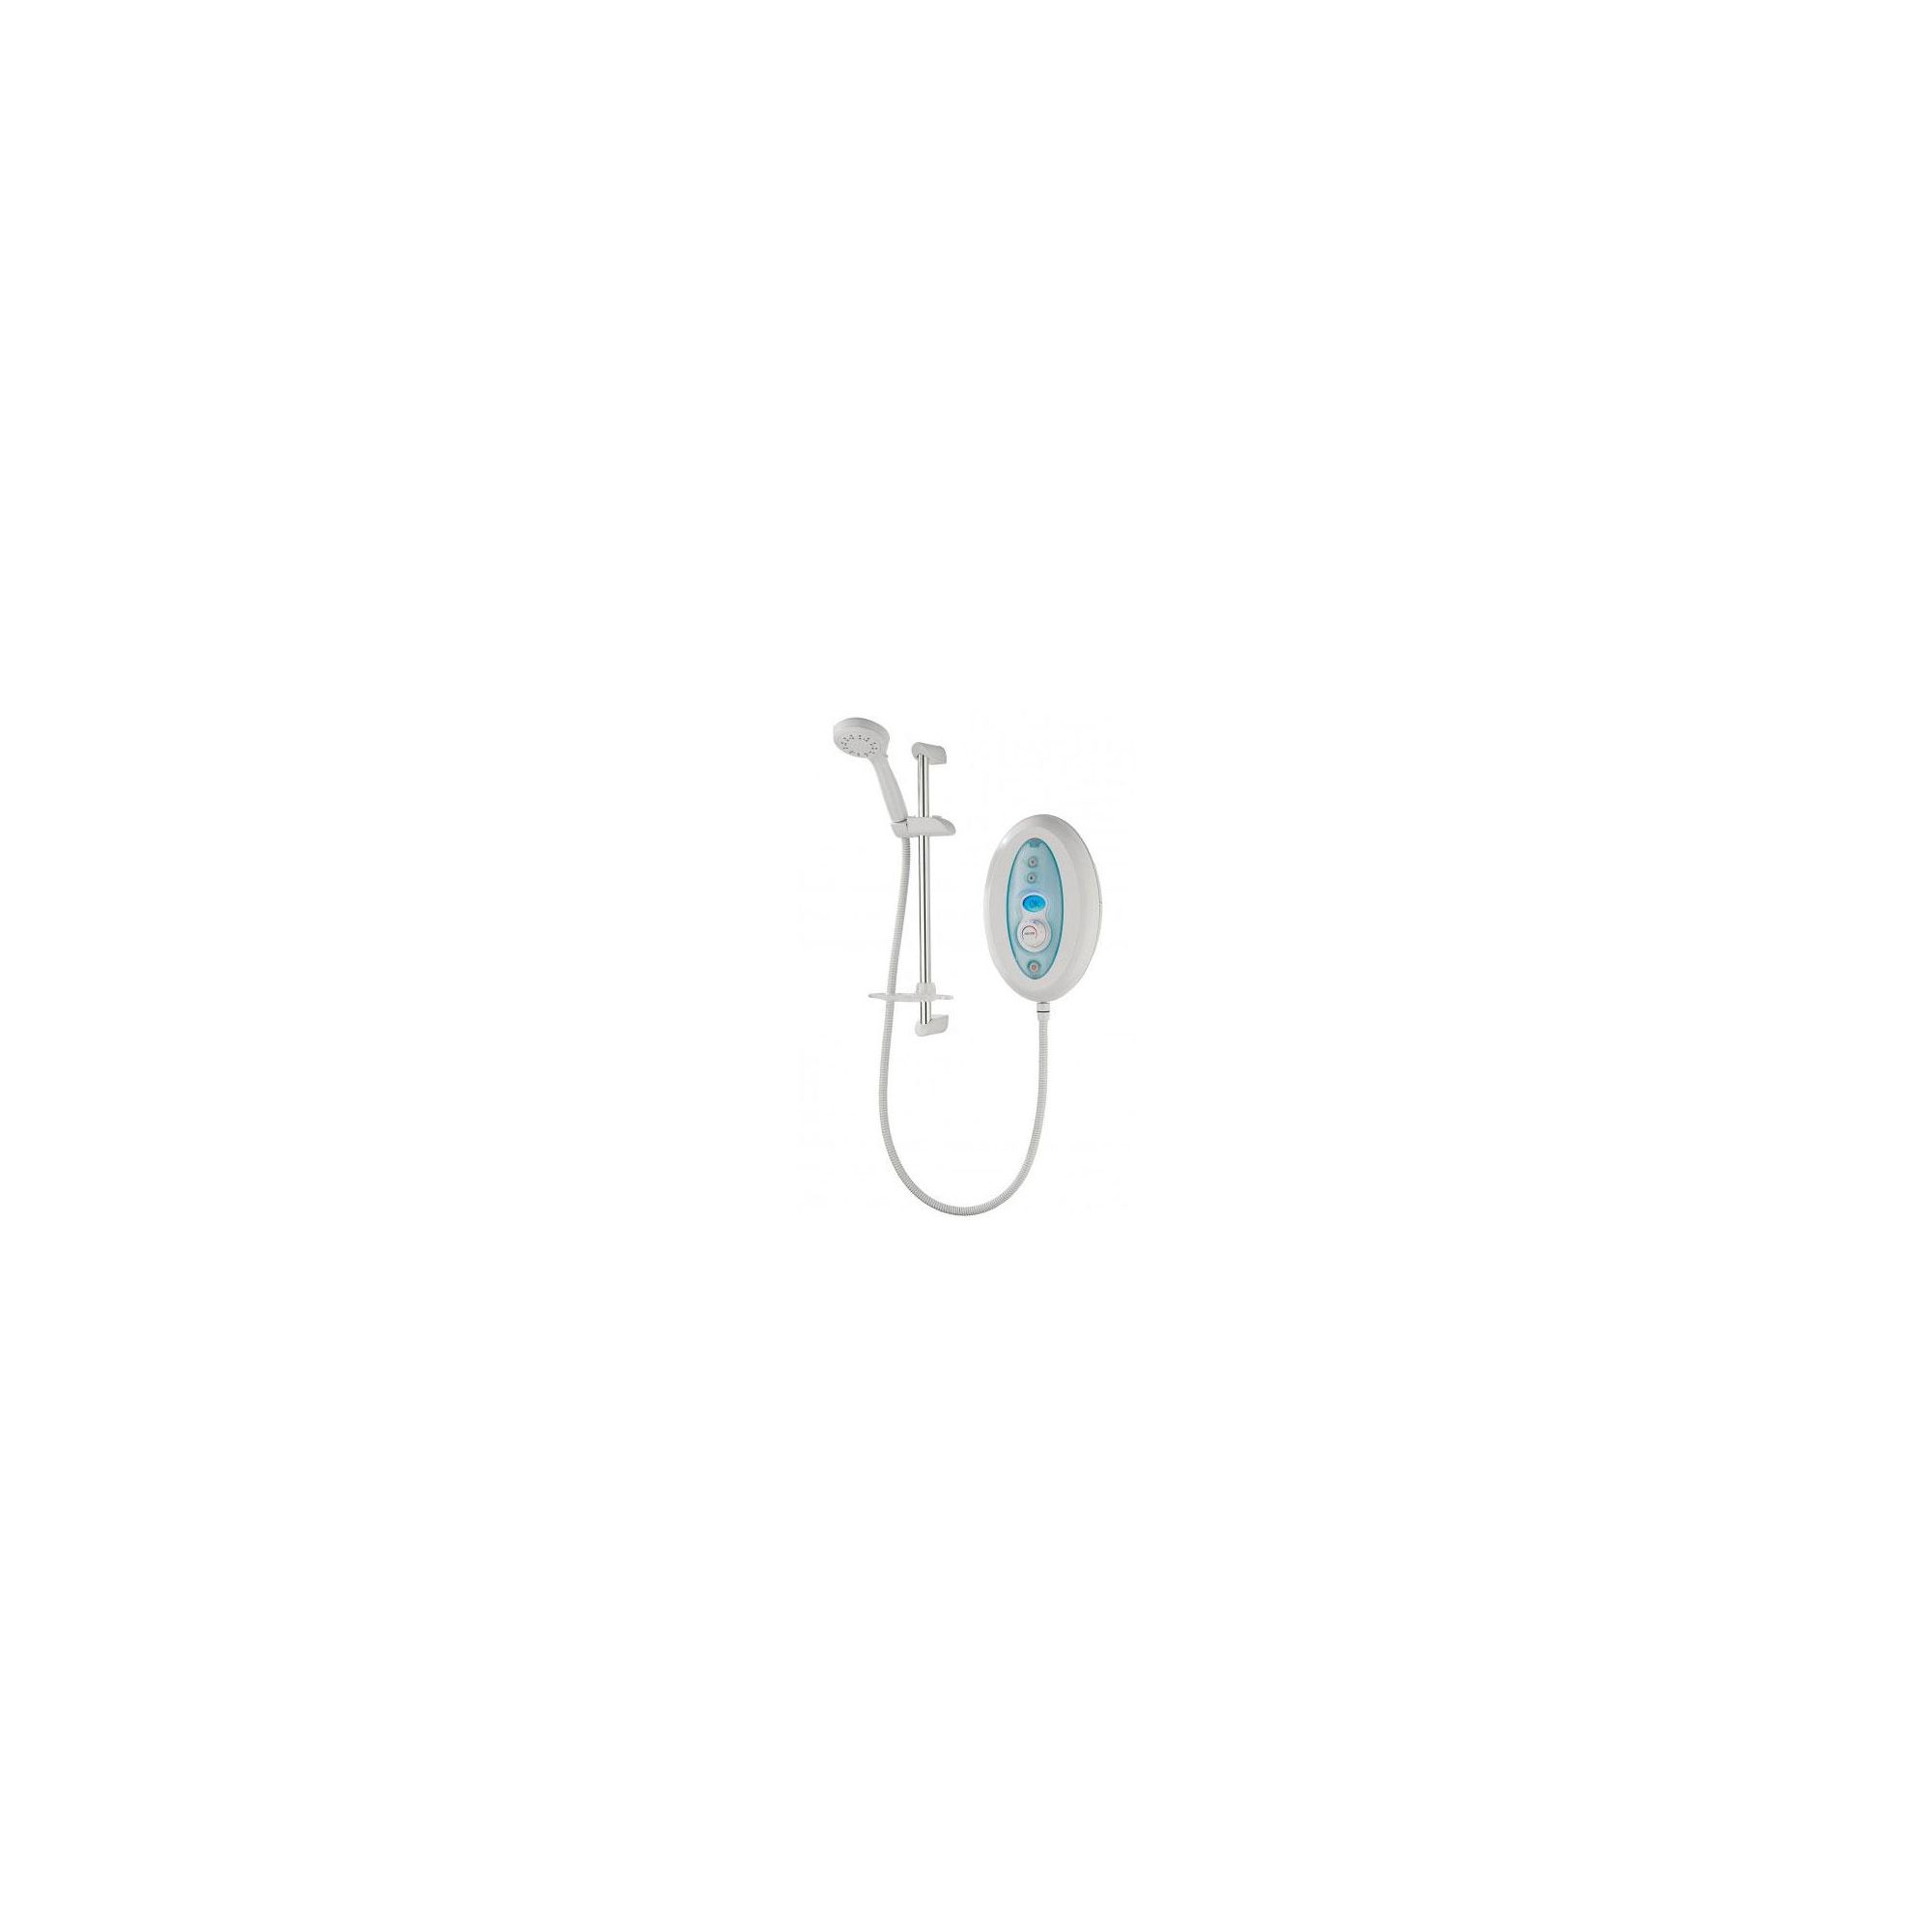 Triton Topaz T100si Thermostatic Electric Shower White 8.5 kW at Tescos Direct